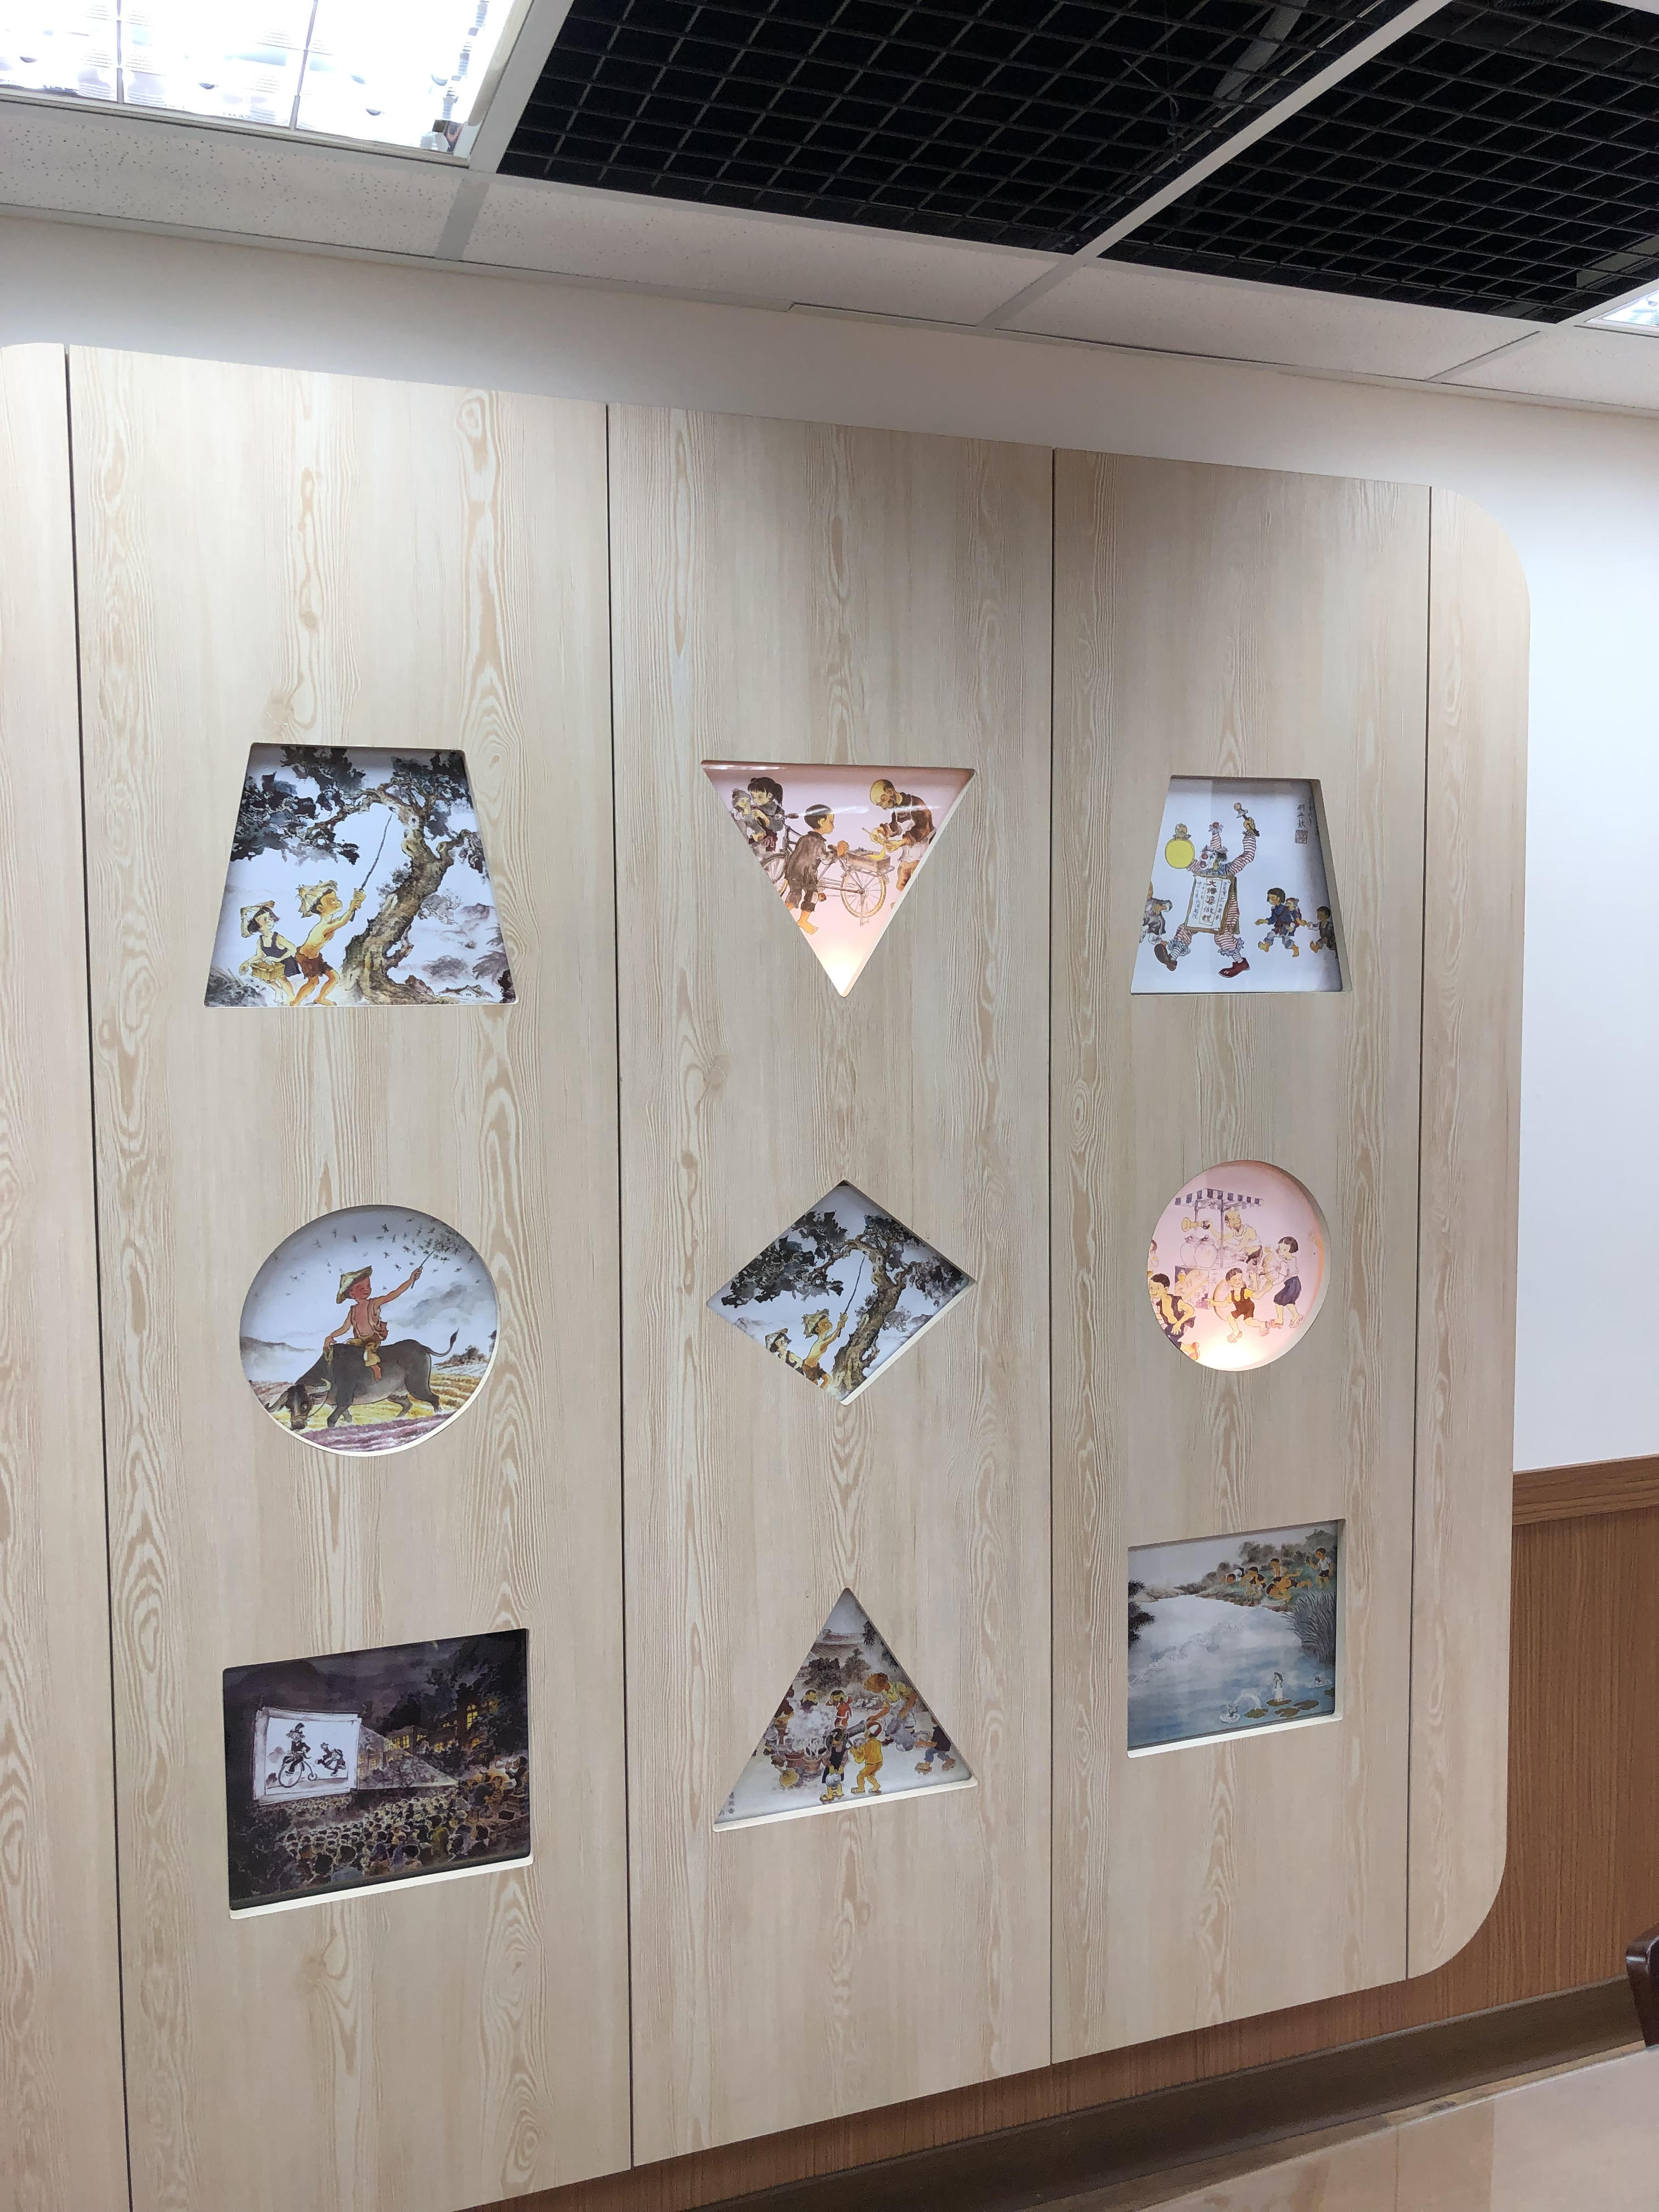 interactive art at the New Centre for Care cafe in Taiwan